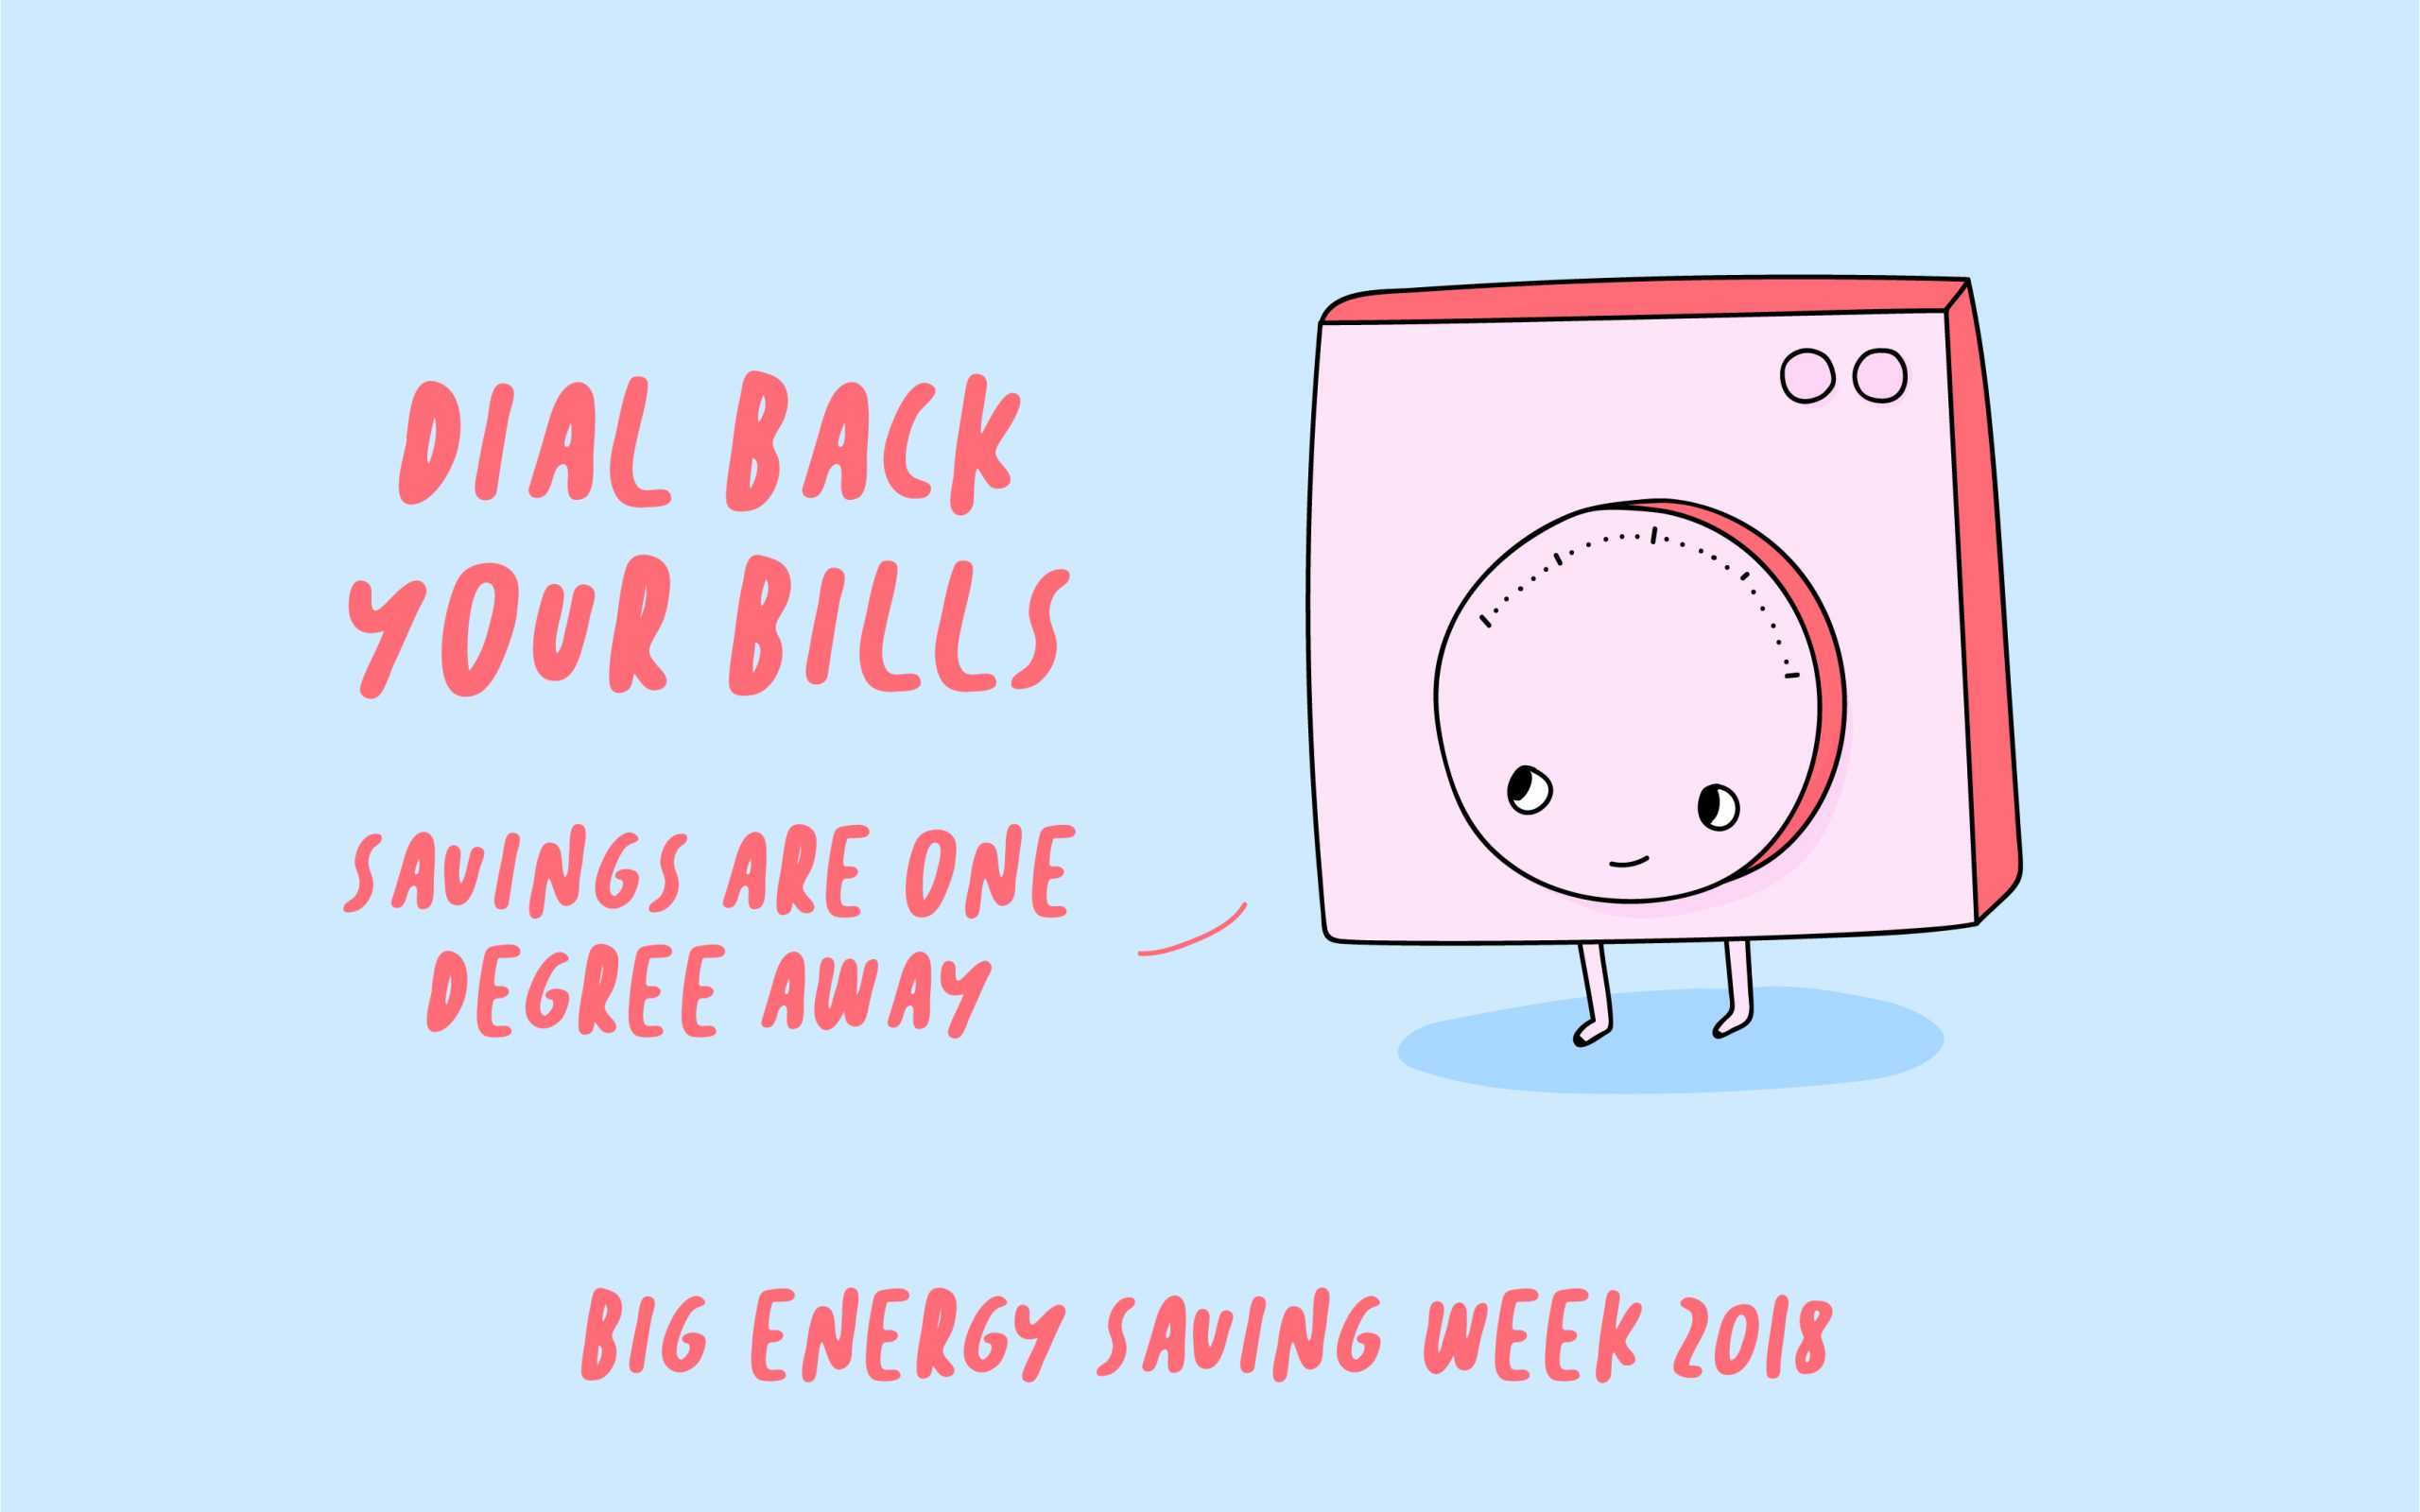 dial back on bills thermostat for big energy saving week